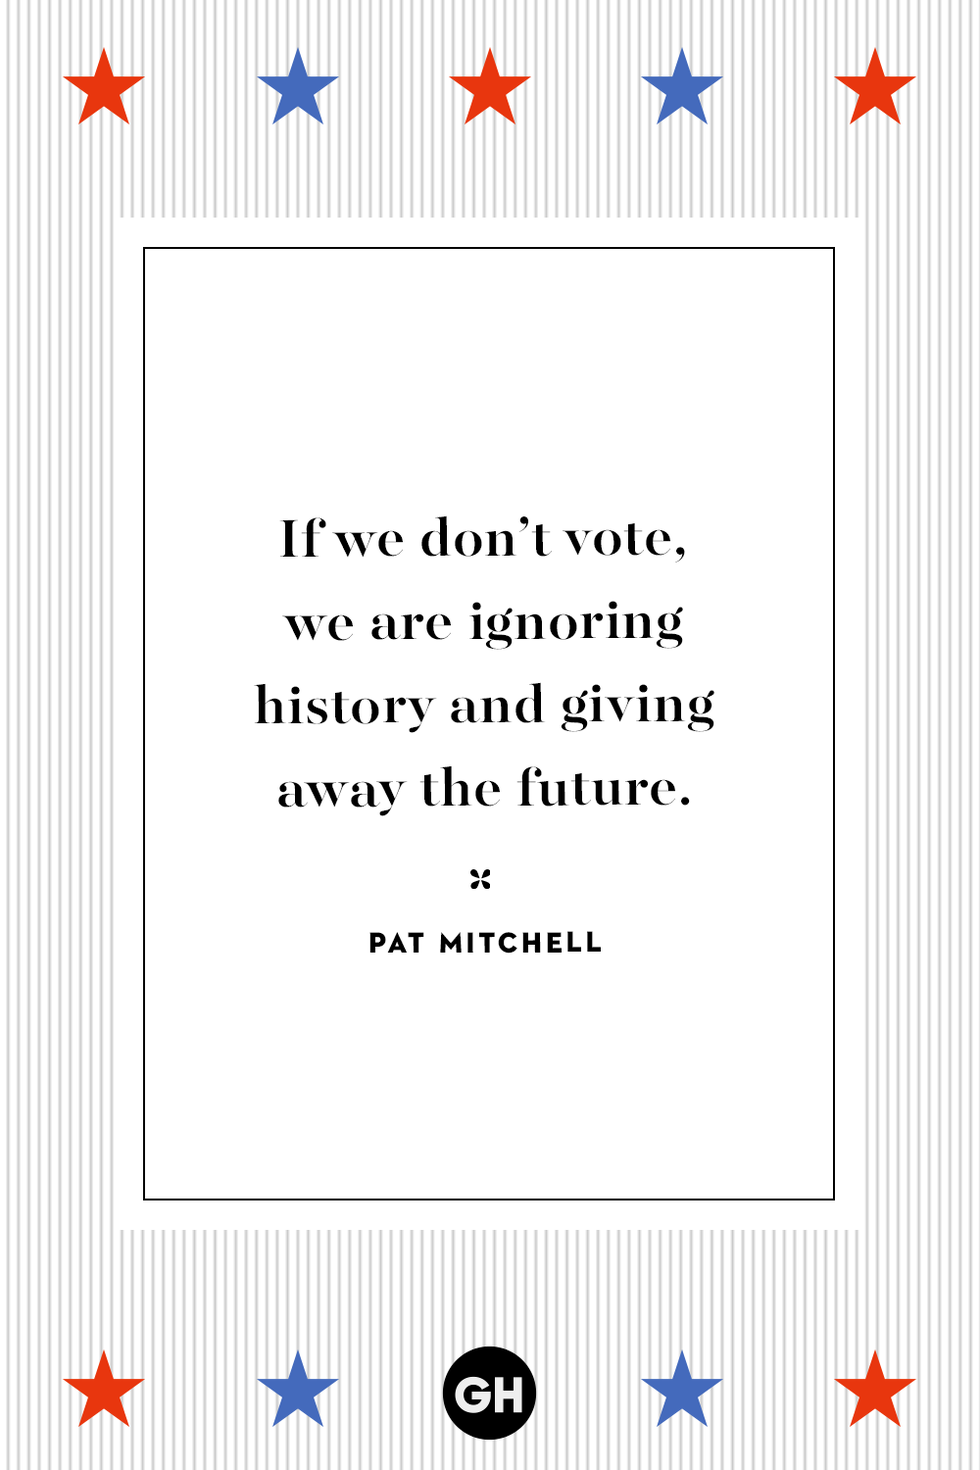 election-quotes-voting-quotes-12-pat-mitchell-1567019363